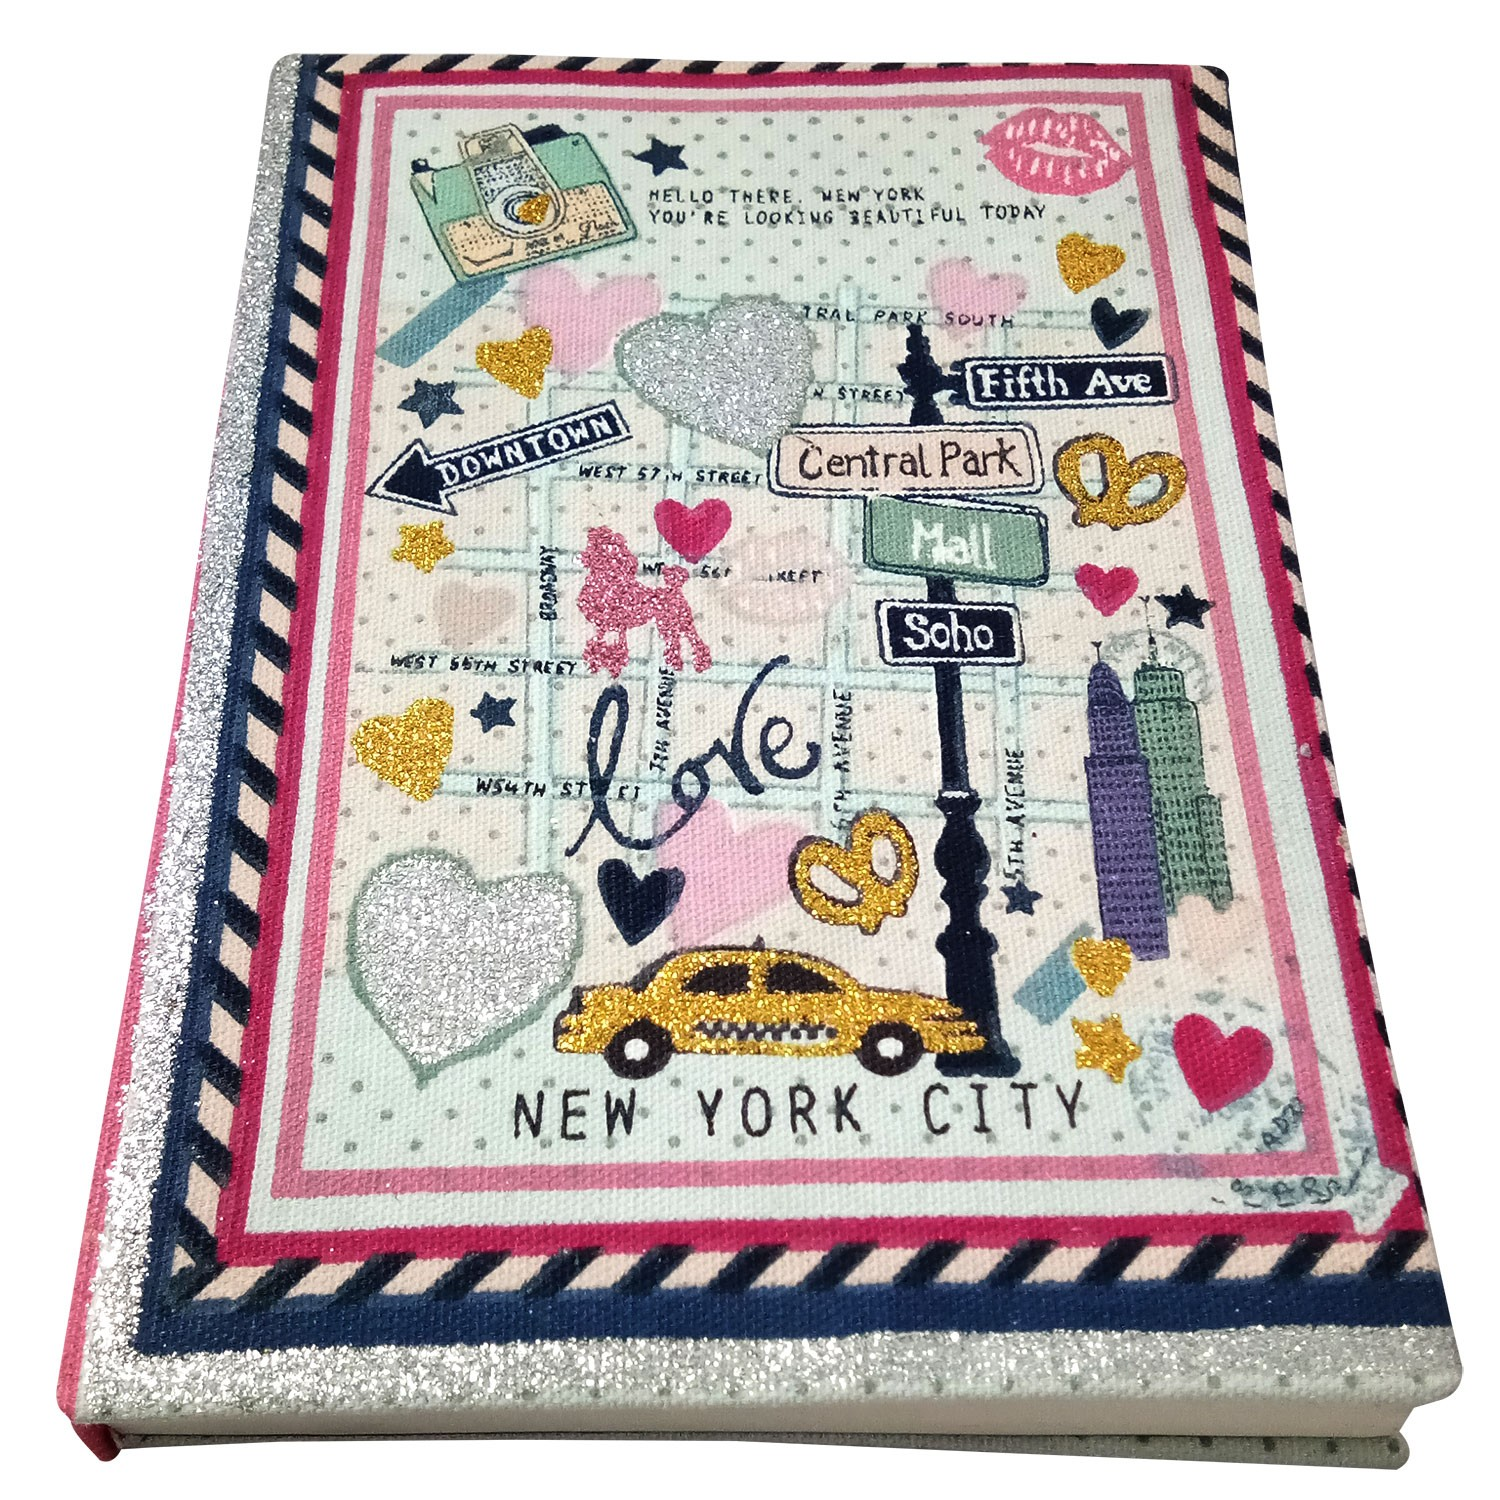 Unique Handmade New York City Cloth Diary by people of urban slums